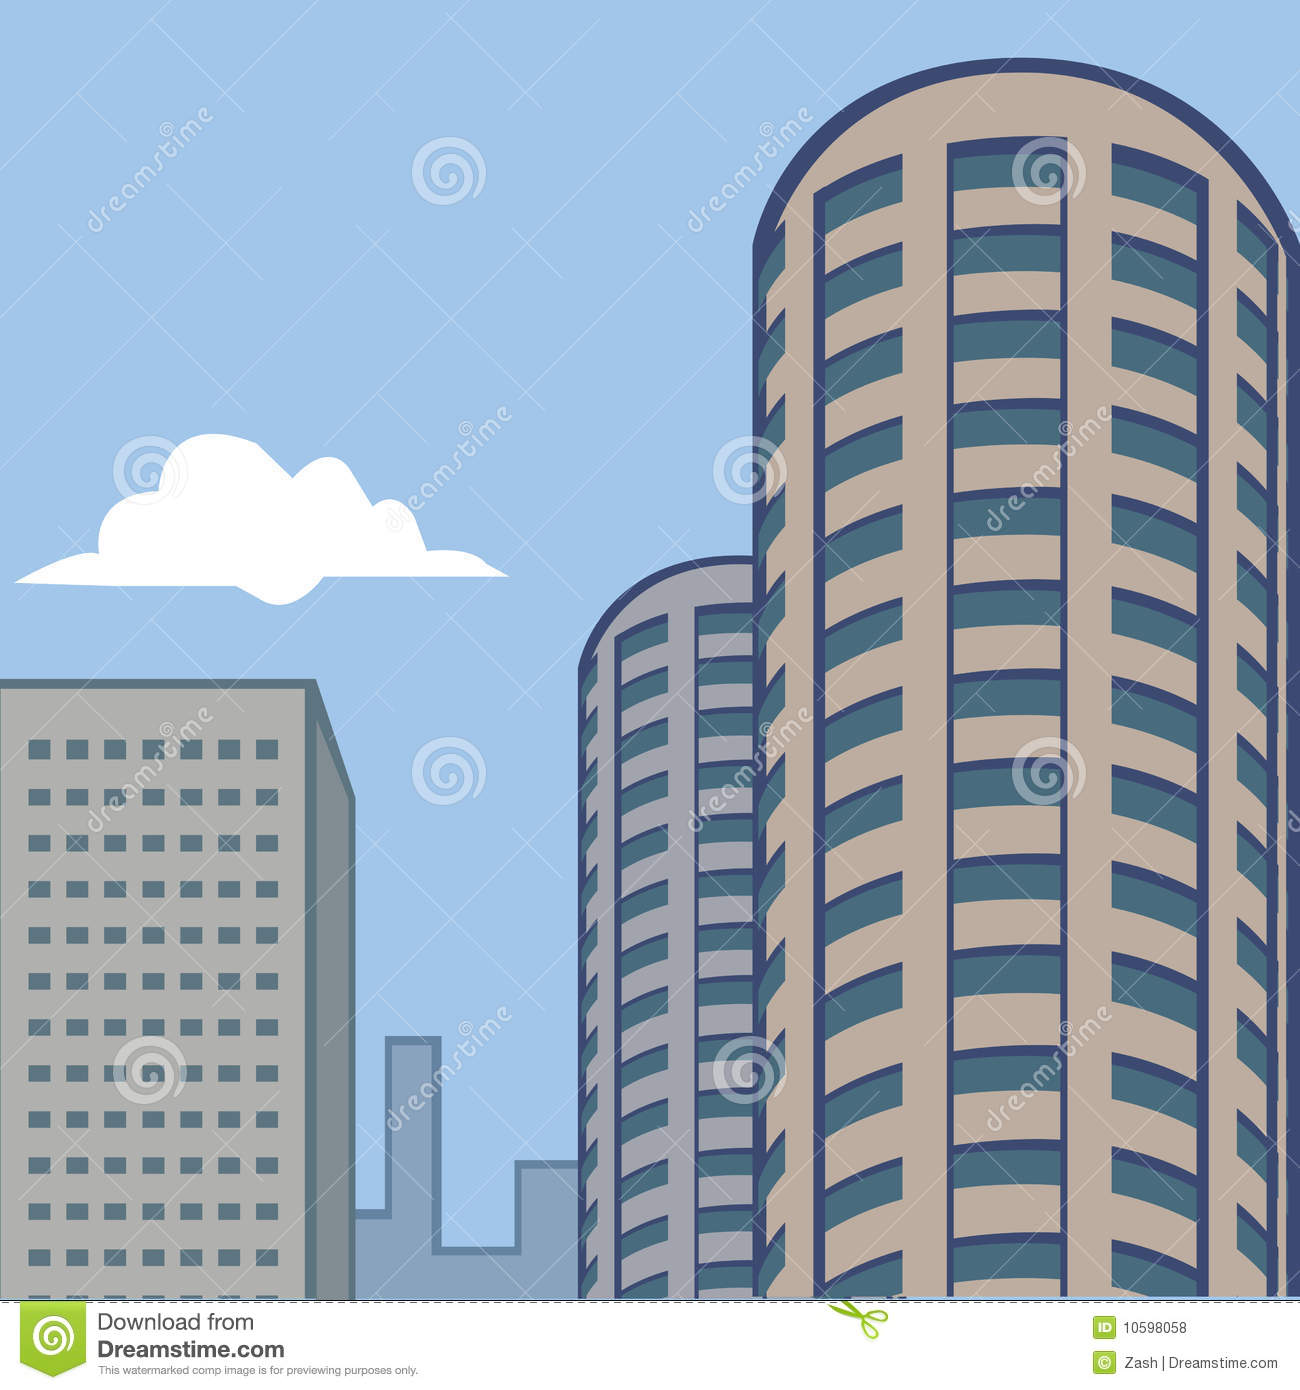 city buildings clipart - photo #10